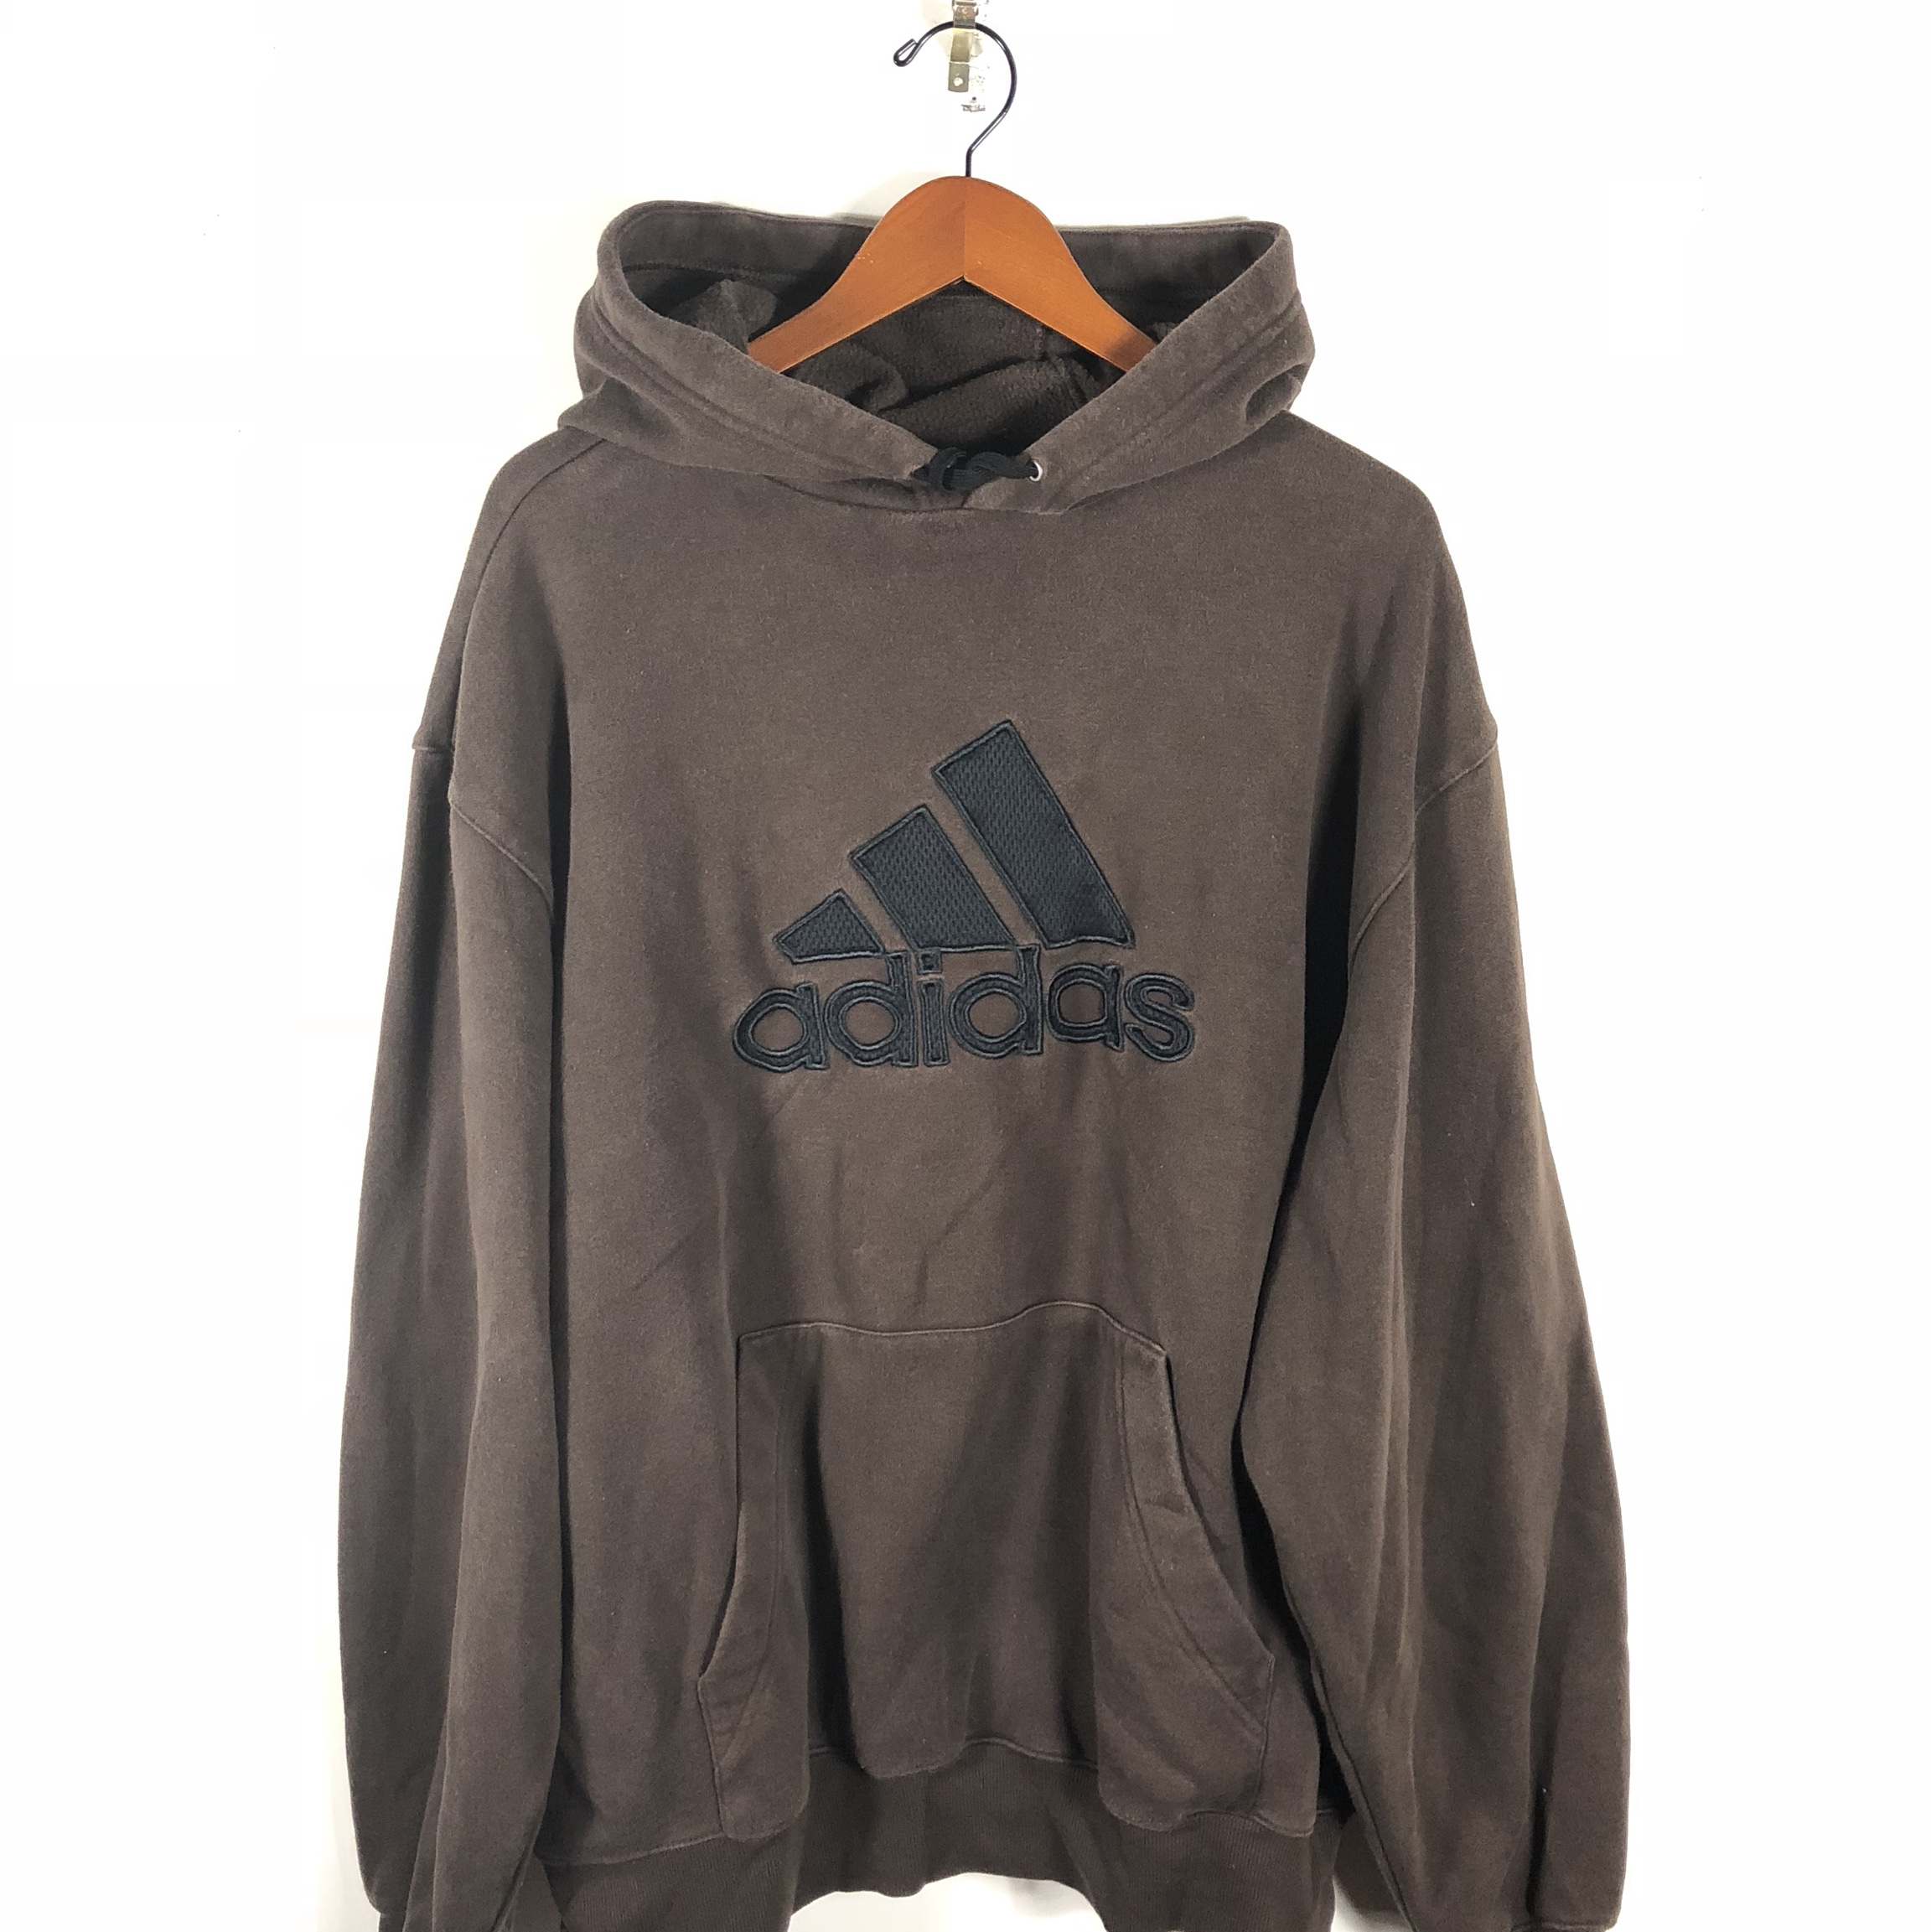 Adidas Essentials Hooded Pullover Sweatshirt Brown Depop